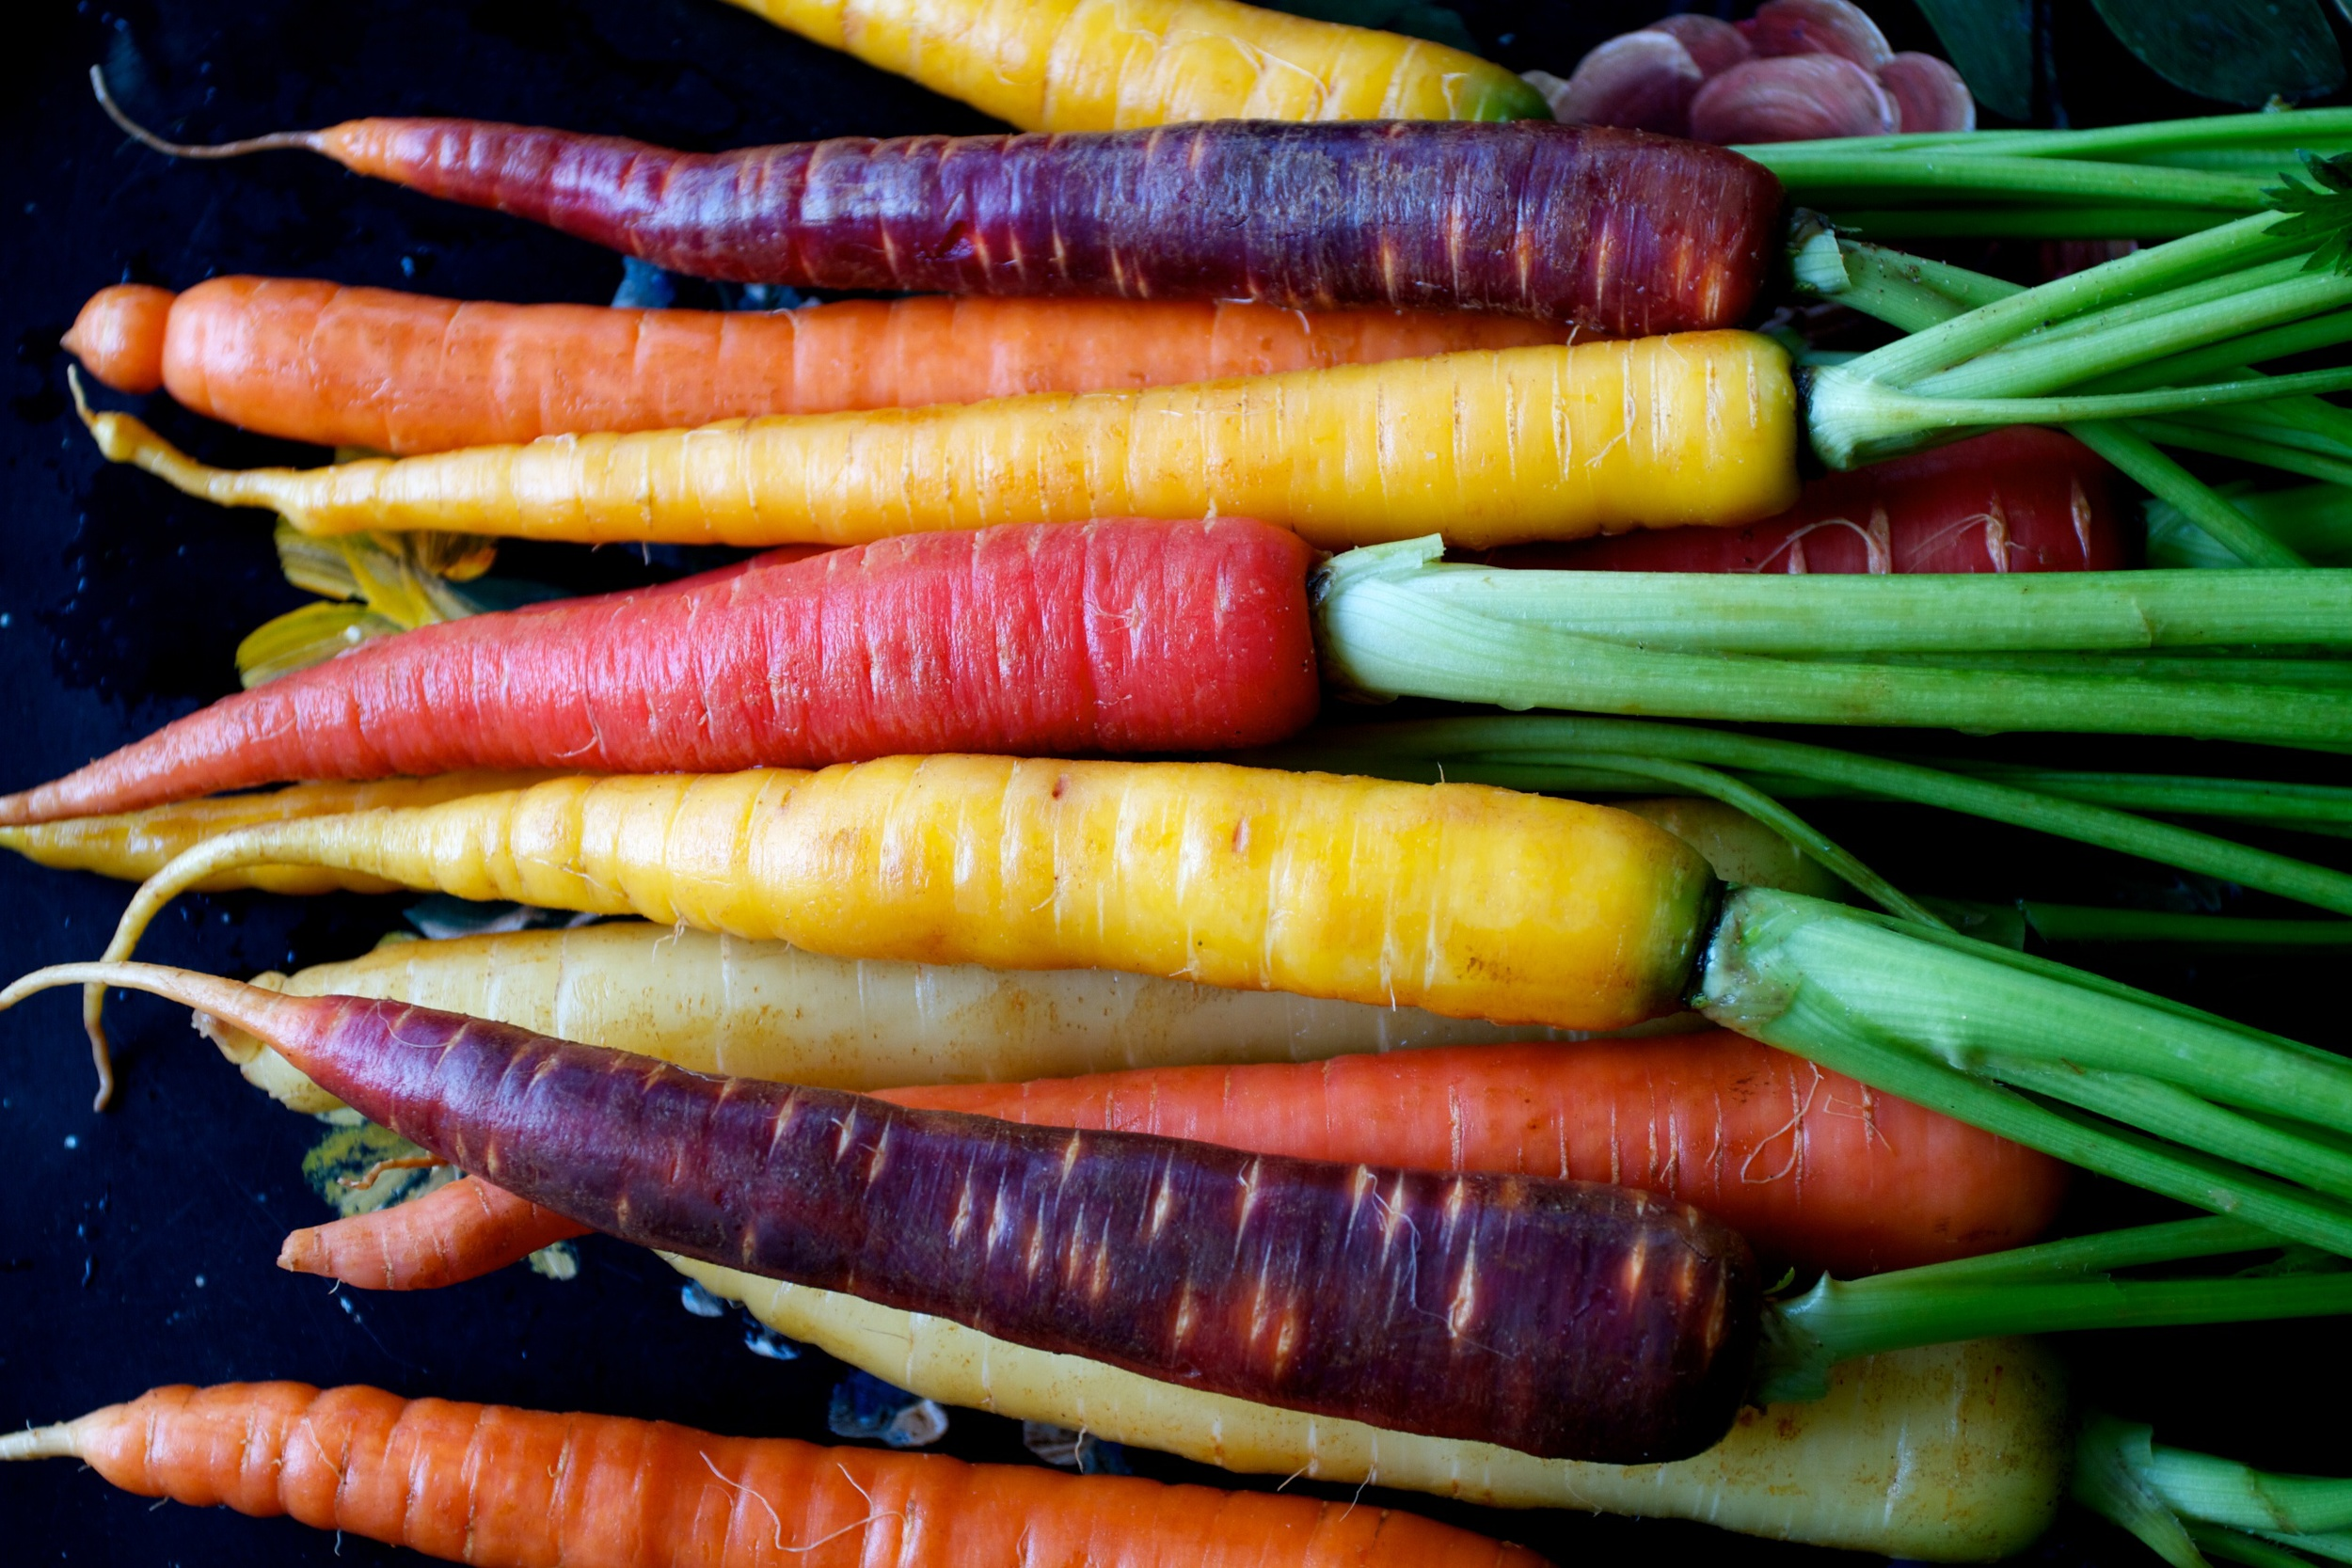 colored-carrots.jpg